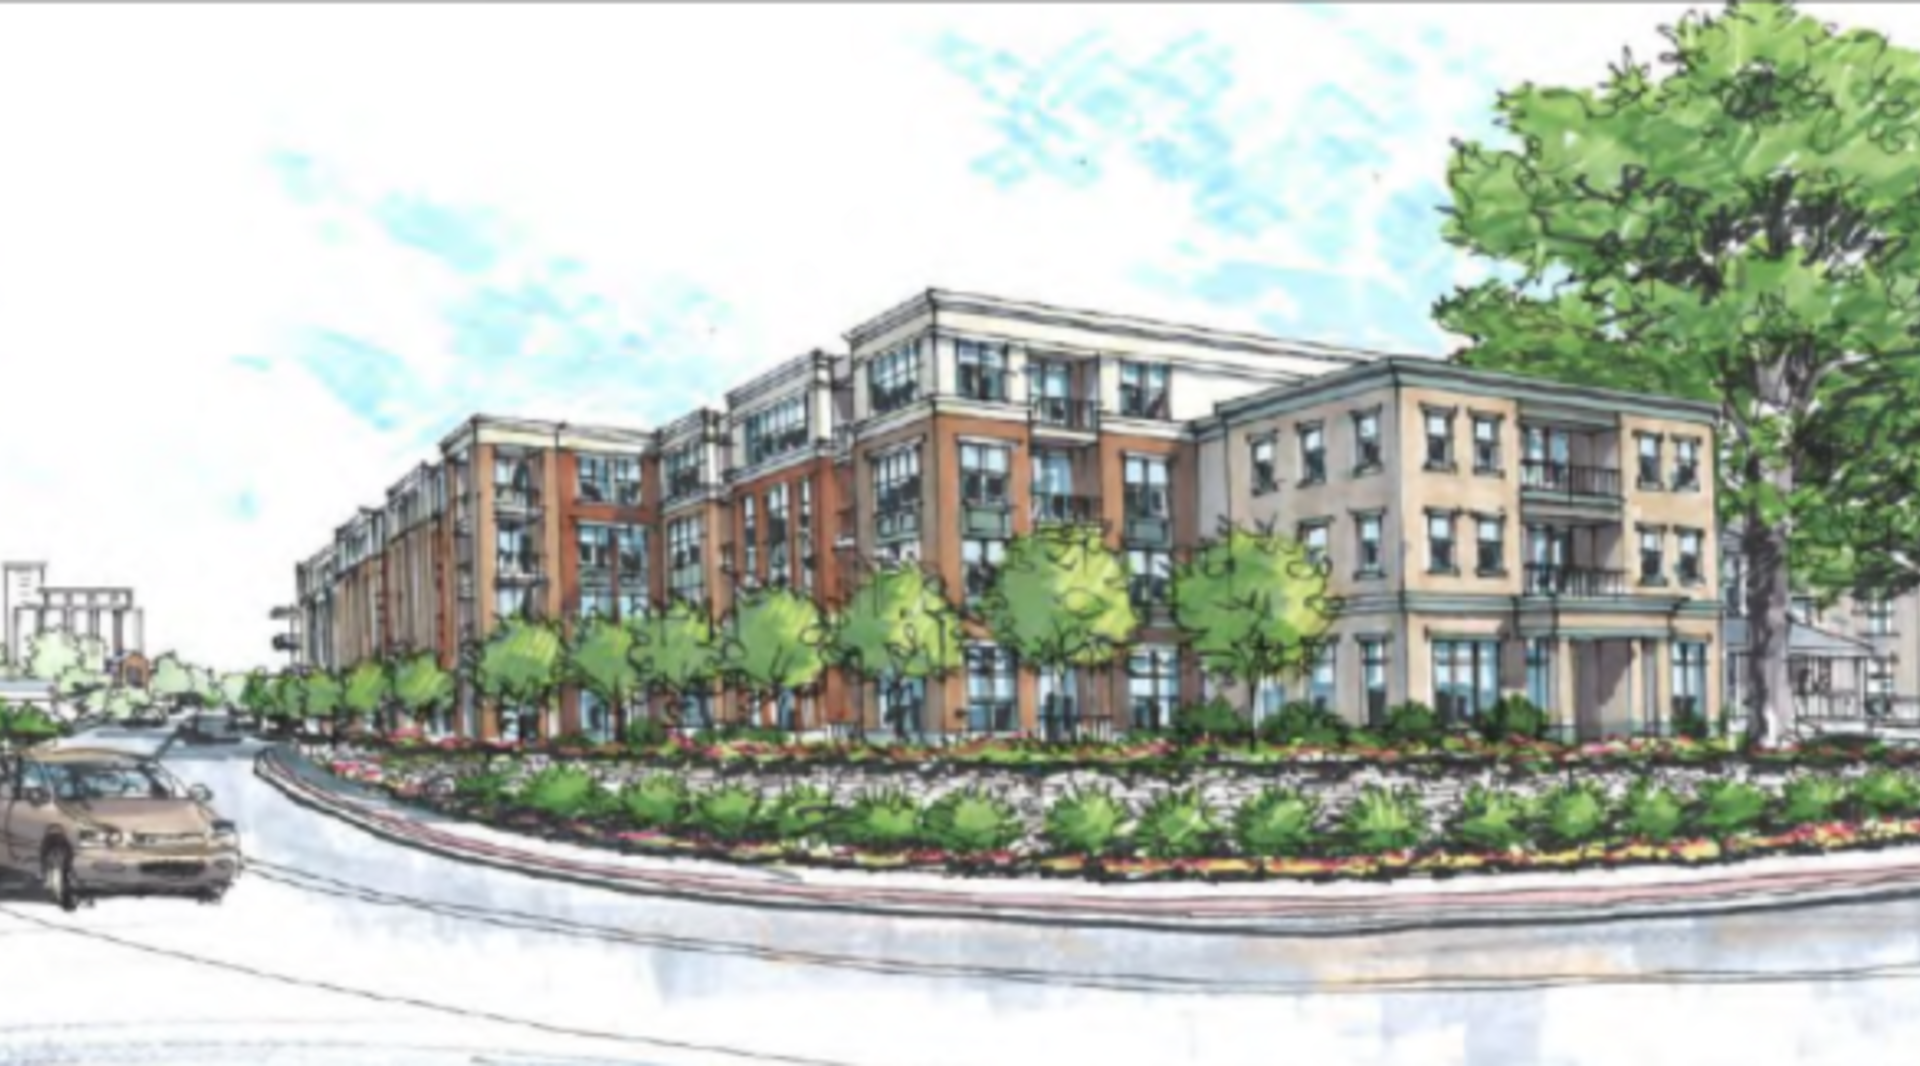 Huge downtown Franklin project lands high-end Hilton